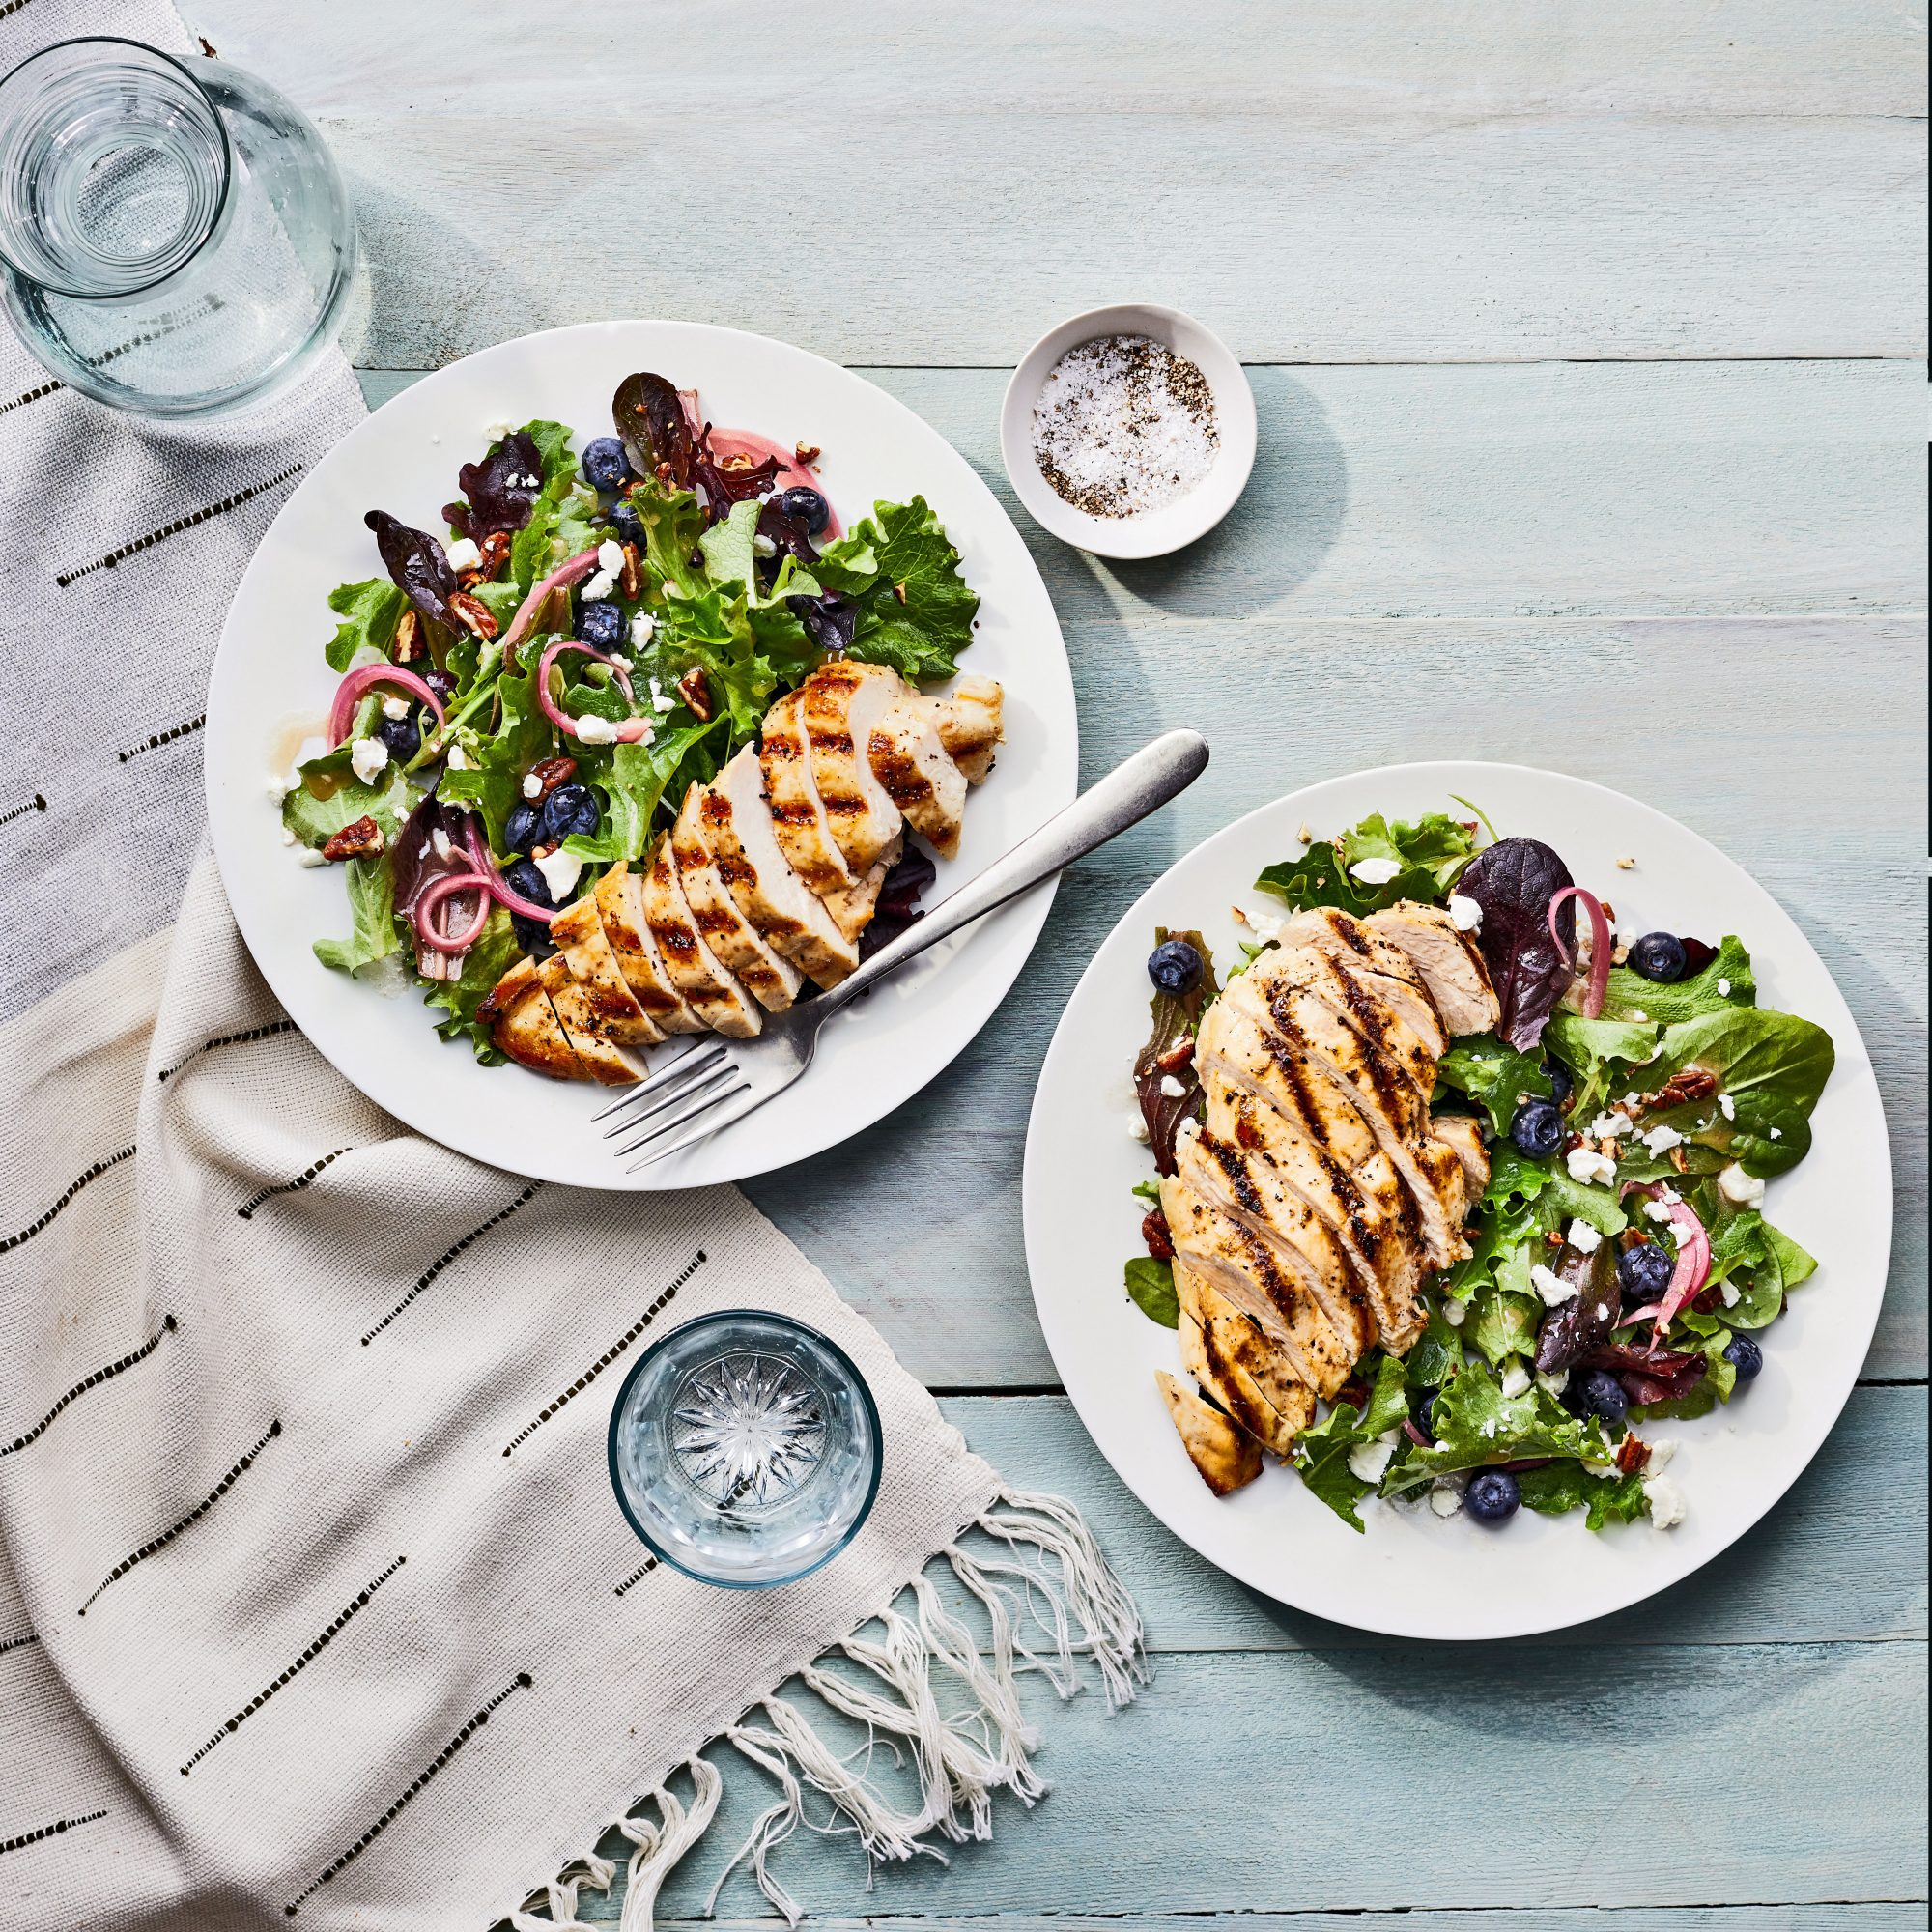 Grilled Chicken Salad with Blueberries, Goat Cheese, and Pickled Onion